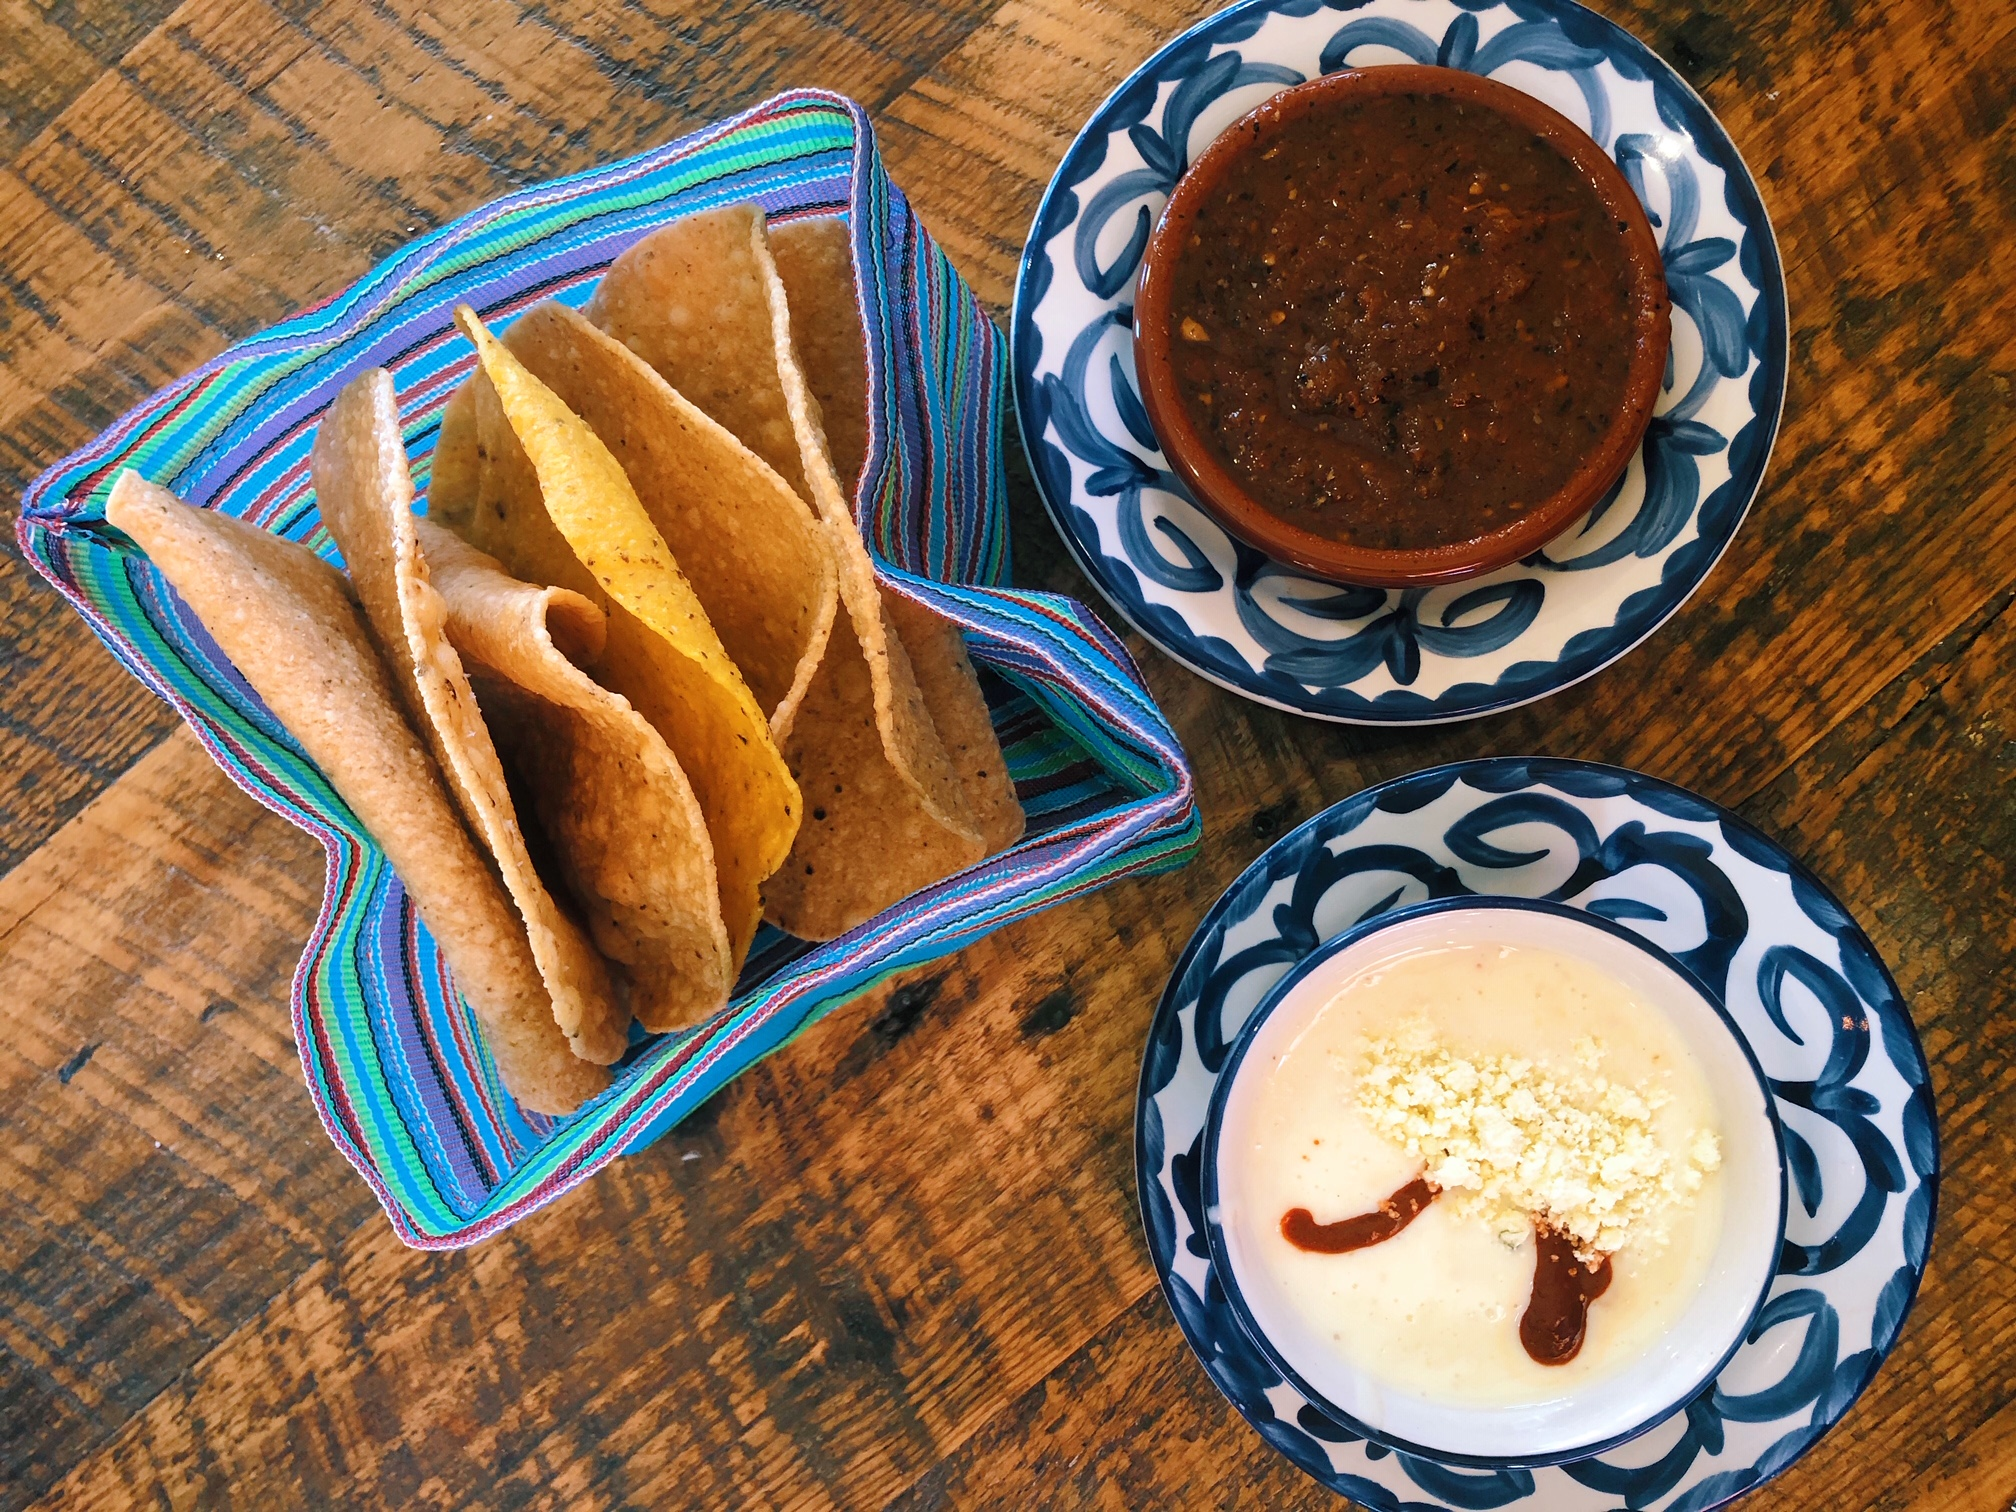 Hummingbird Queso, Salsa, & Homemade Tortillas